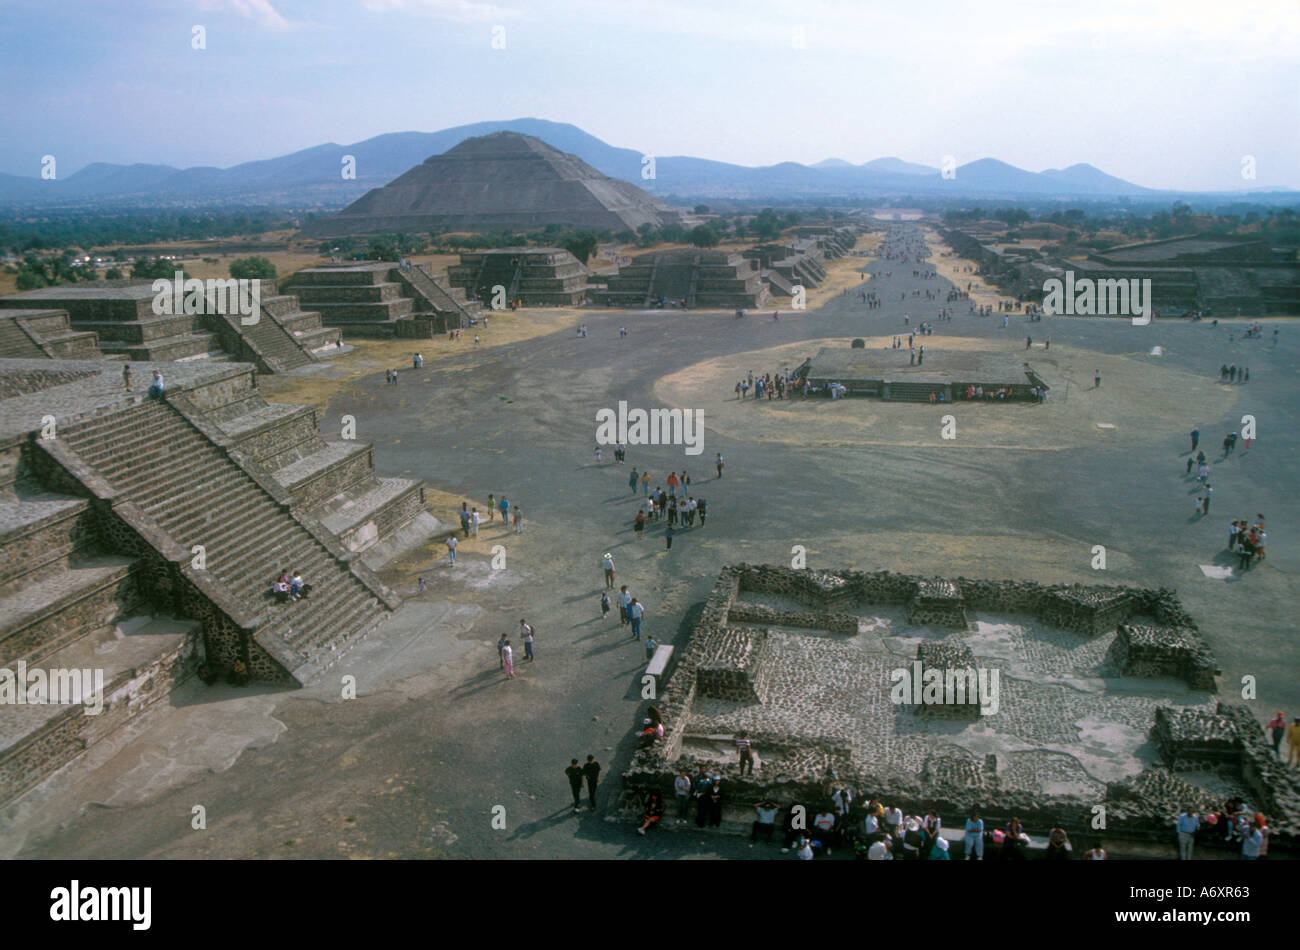 Avenue of the deads in Teotihuacan Mexico Stock Photo